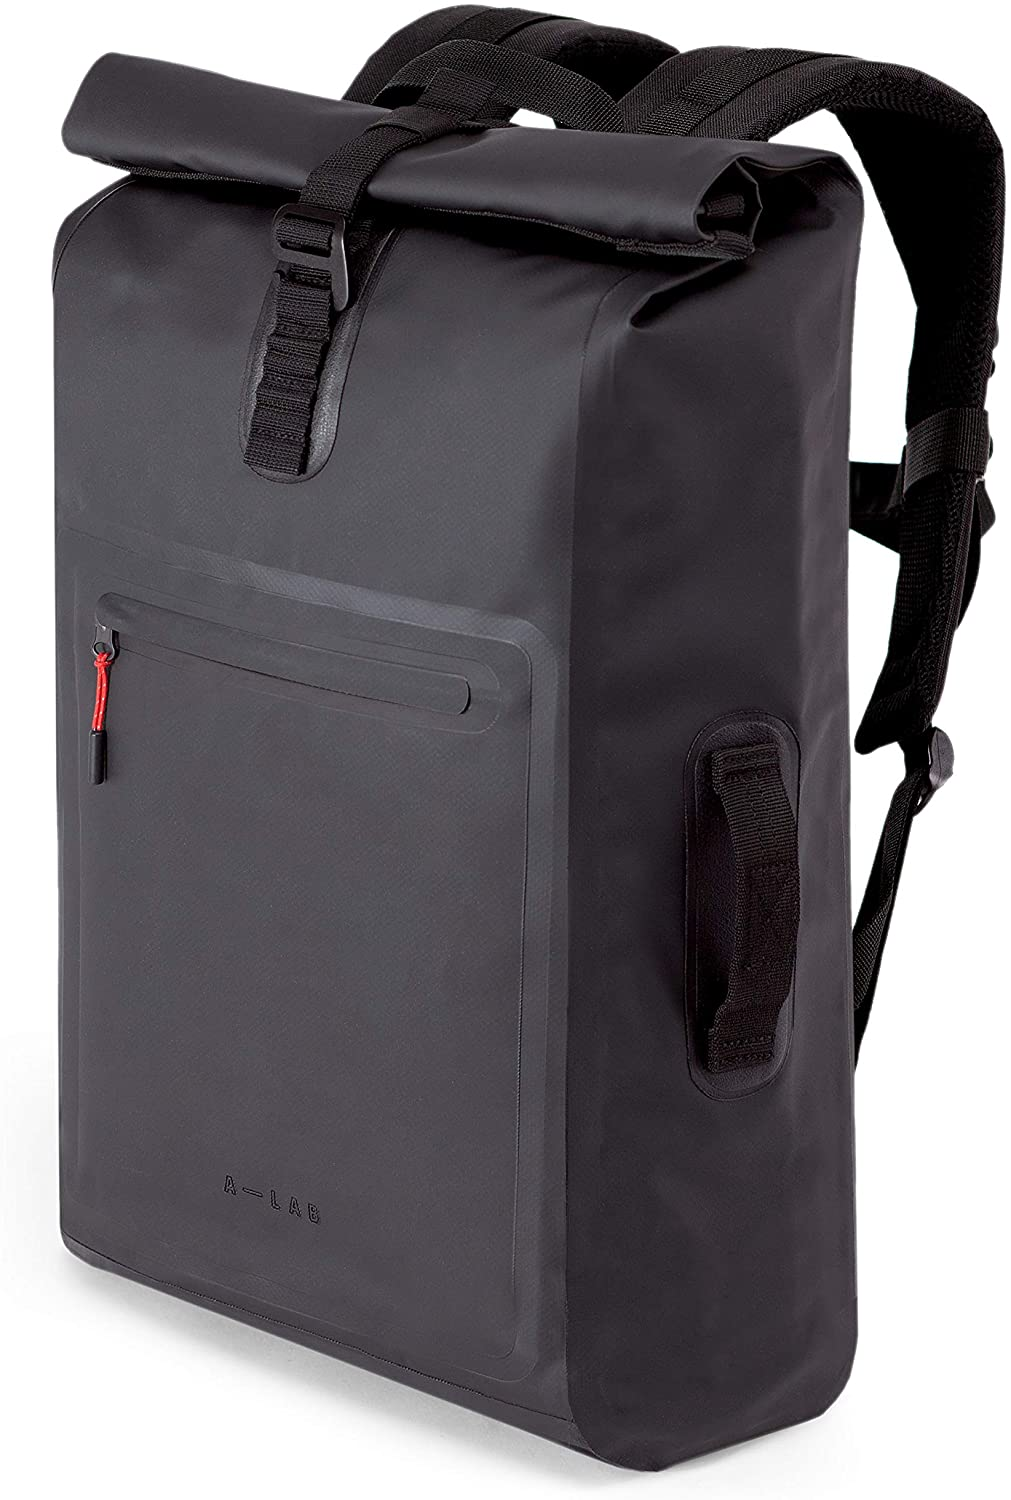 "A-LAB | Model D | Waterproof Bicycle & Messenger Backpack with 15"" Laptop Sleeve"